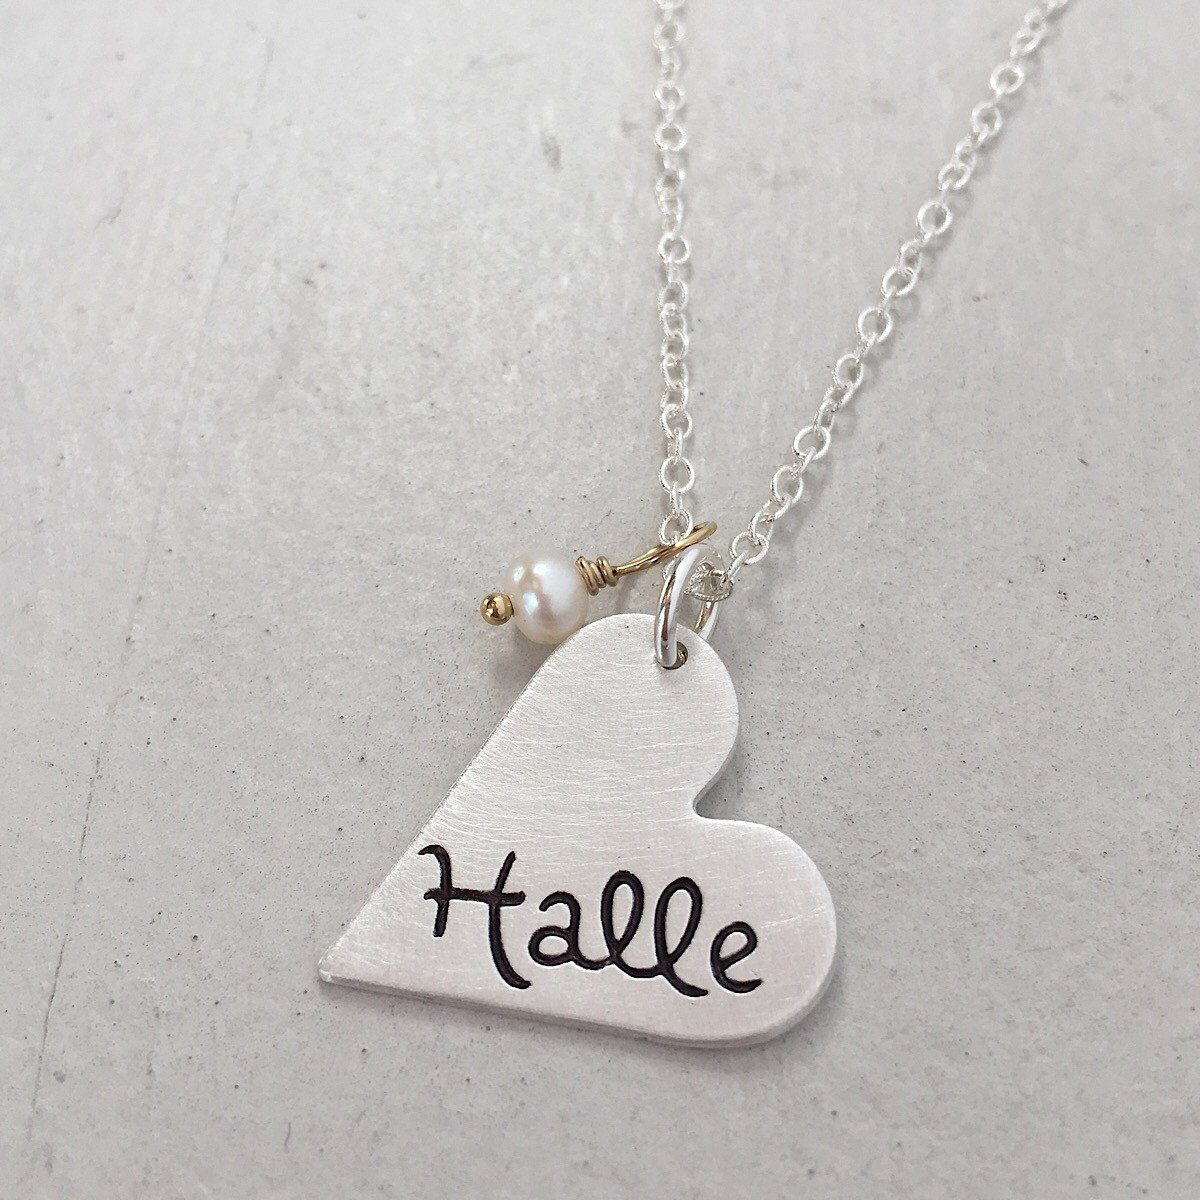 Heart Name Charm Necklace - IsabelleGraceJewelry